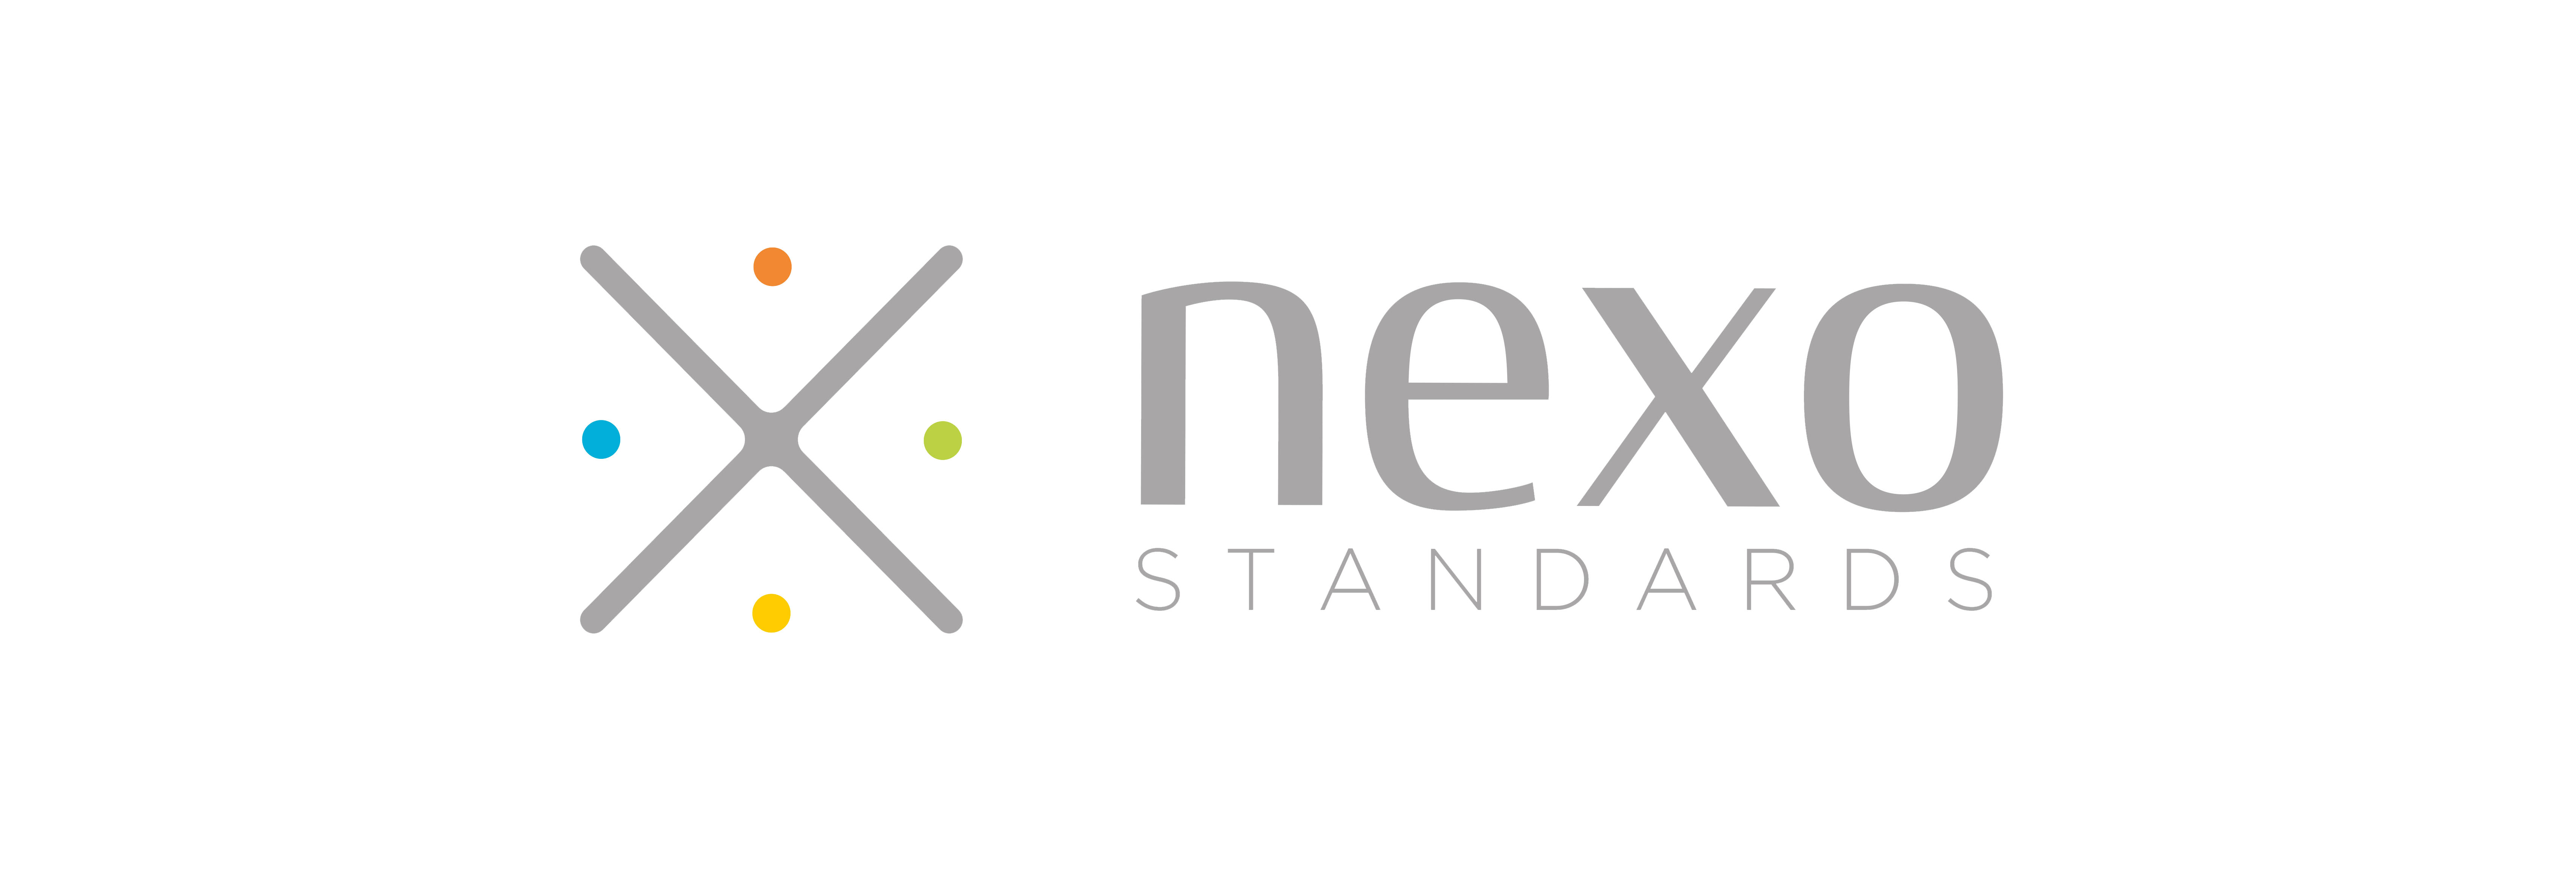 nexo standards Powers 5bn+ Payment Transactions Annually